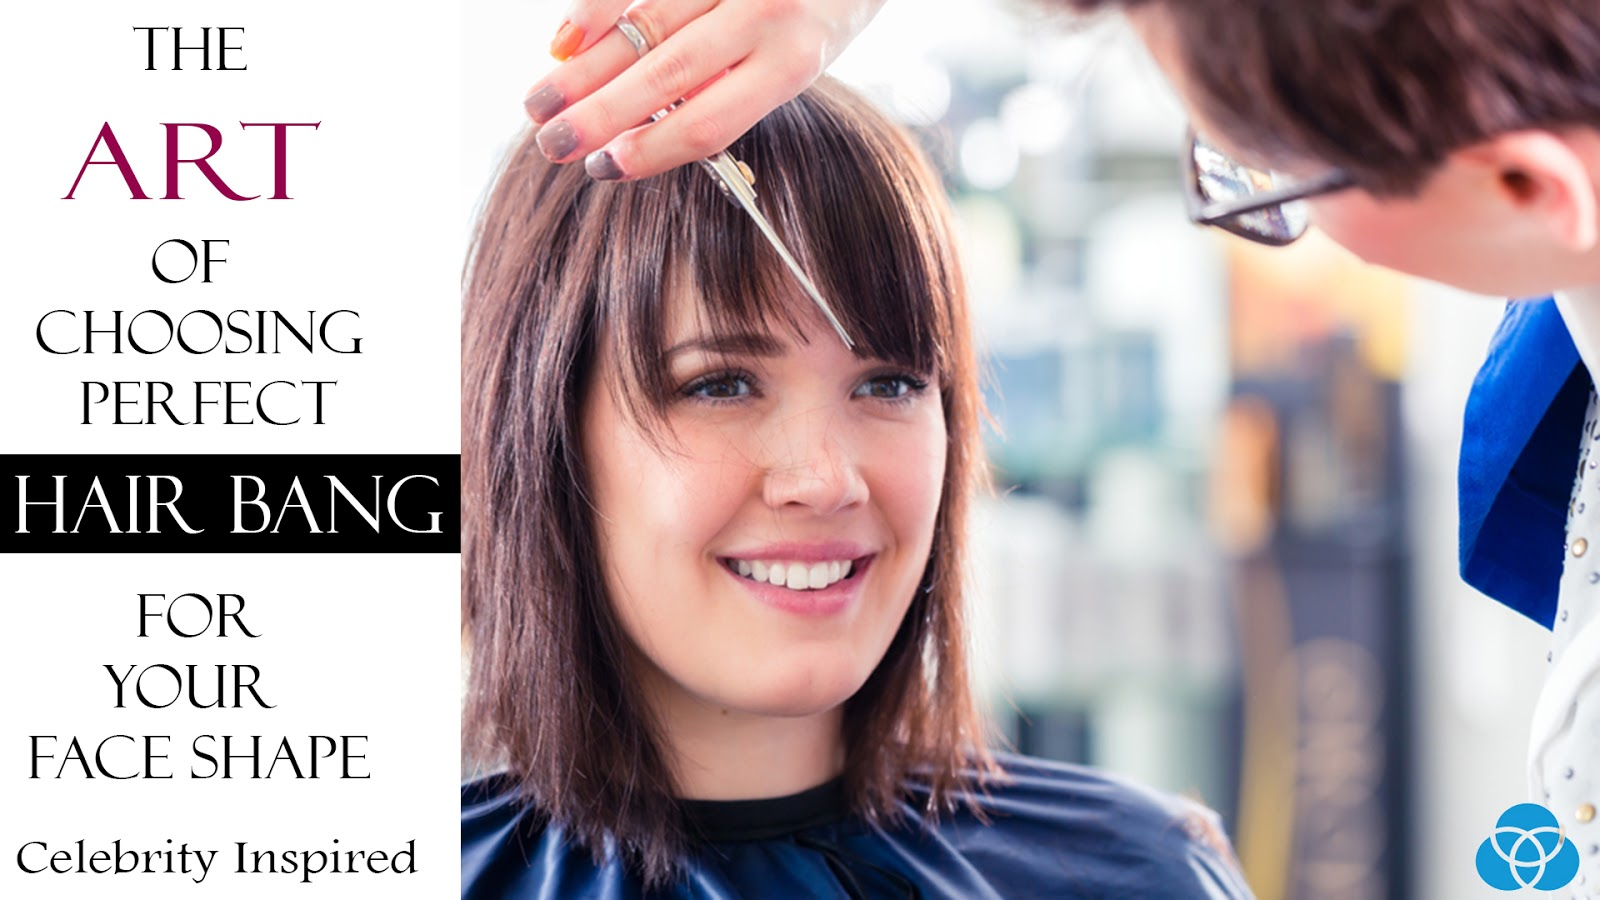 The Art Of Choosing Perfect Hair Bang For Your Face Shape - Celebrity  Inspired - Vestellite